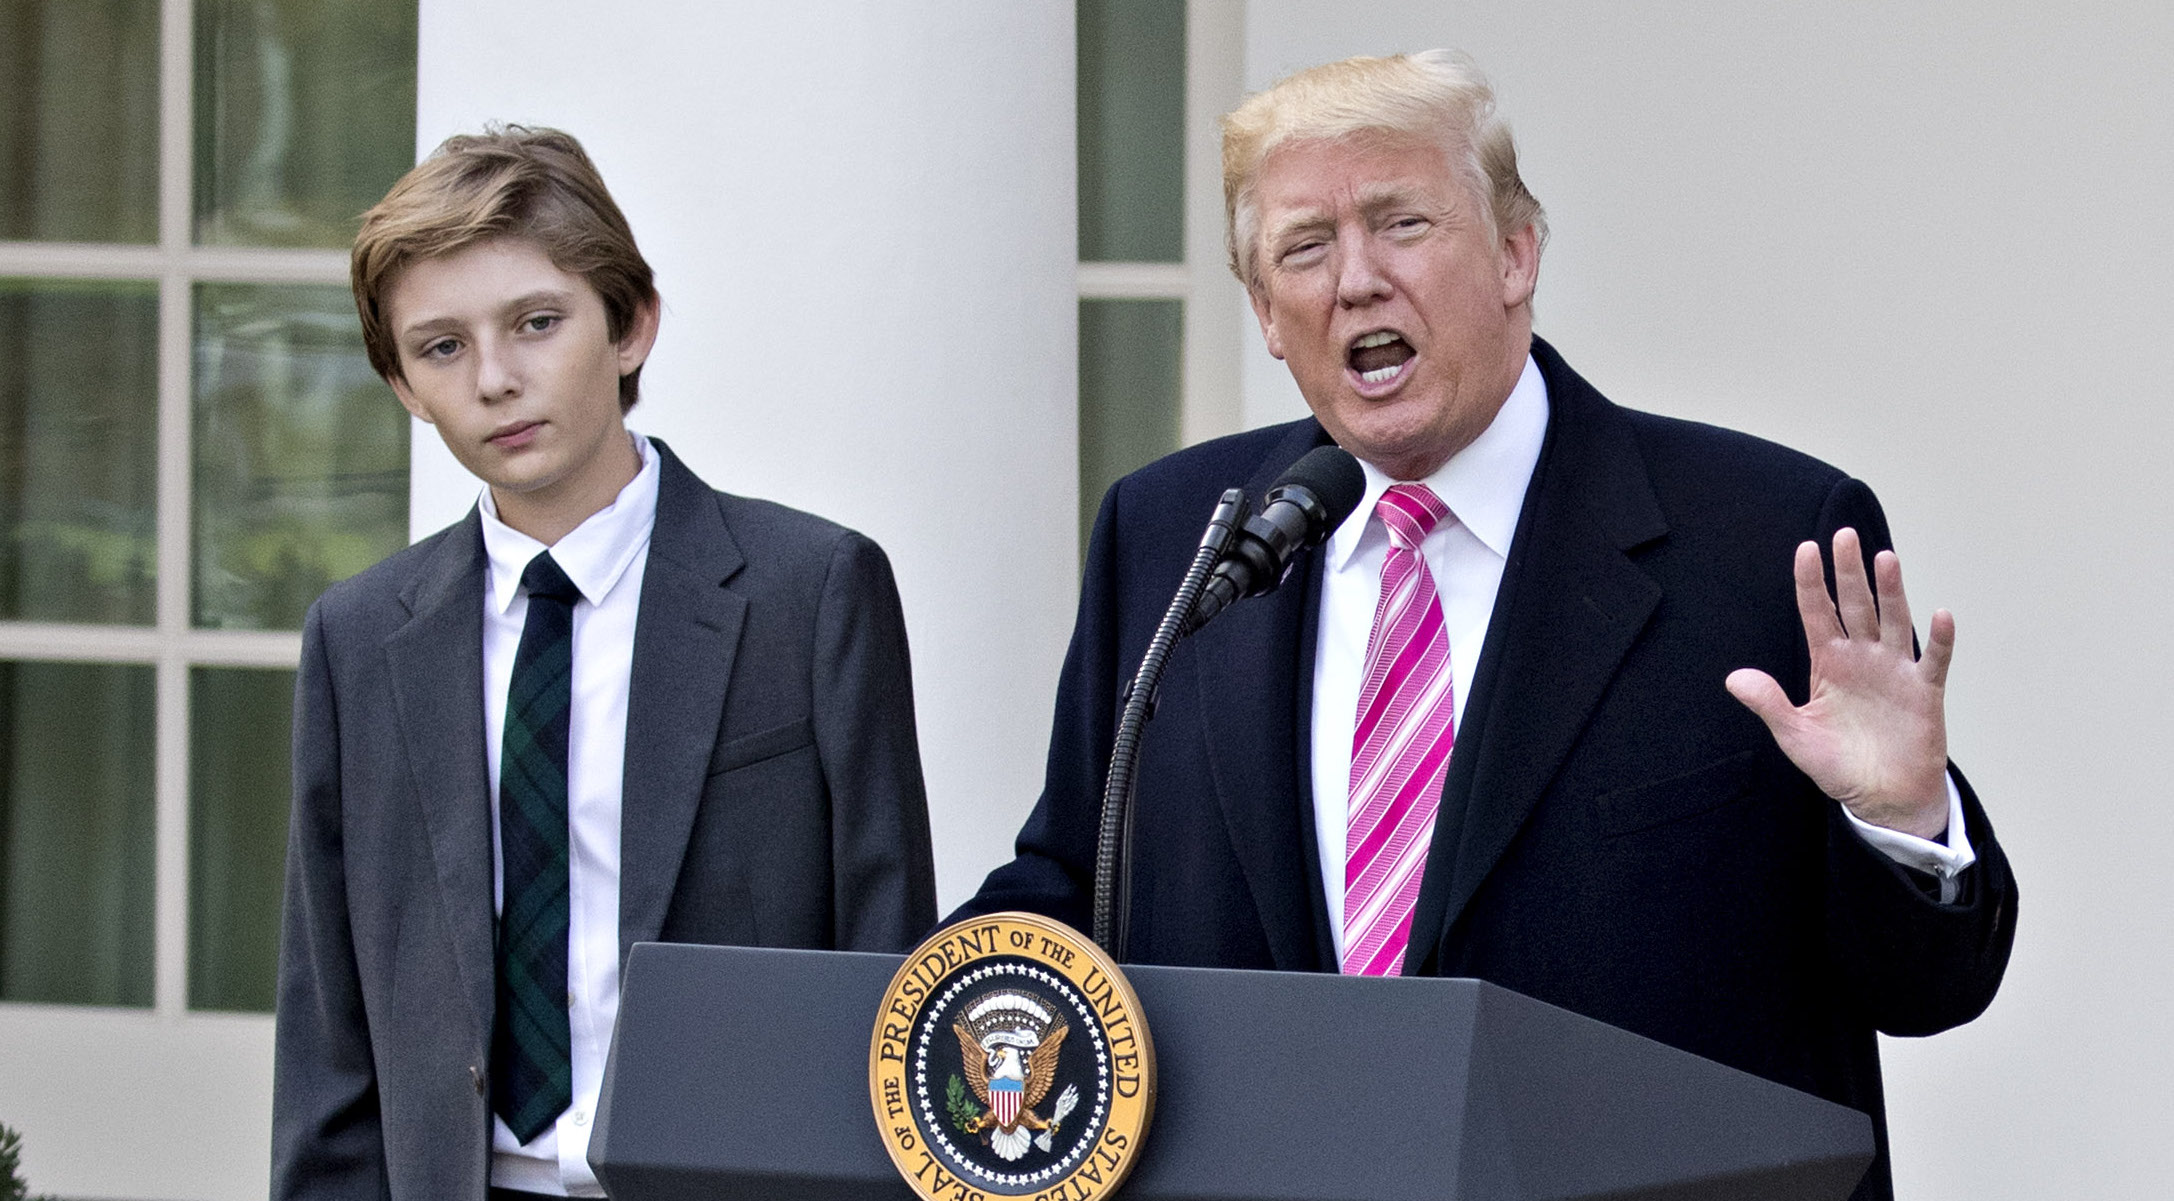 Barron Trump Facts Get To Know Donald And Melania S Young Son